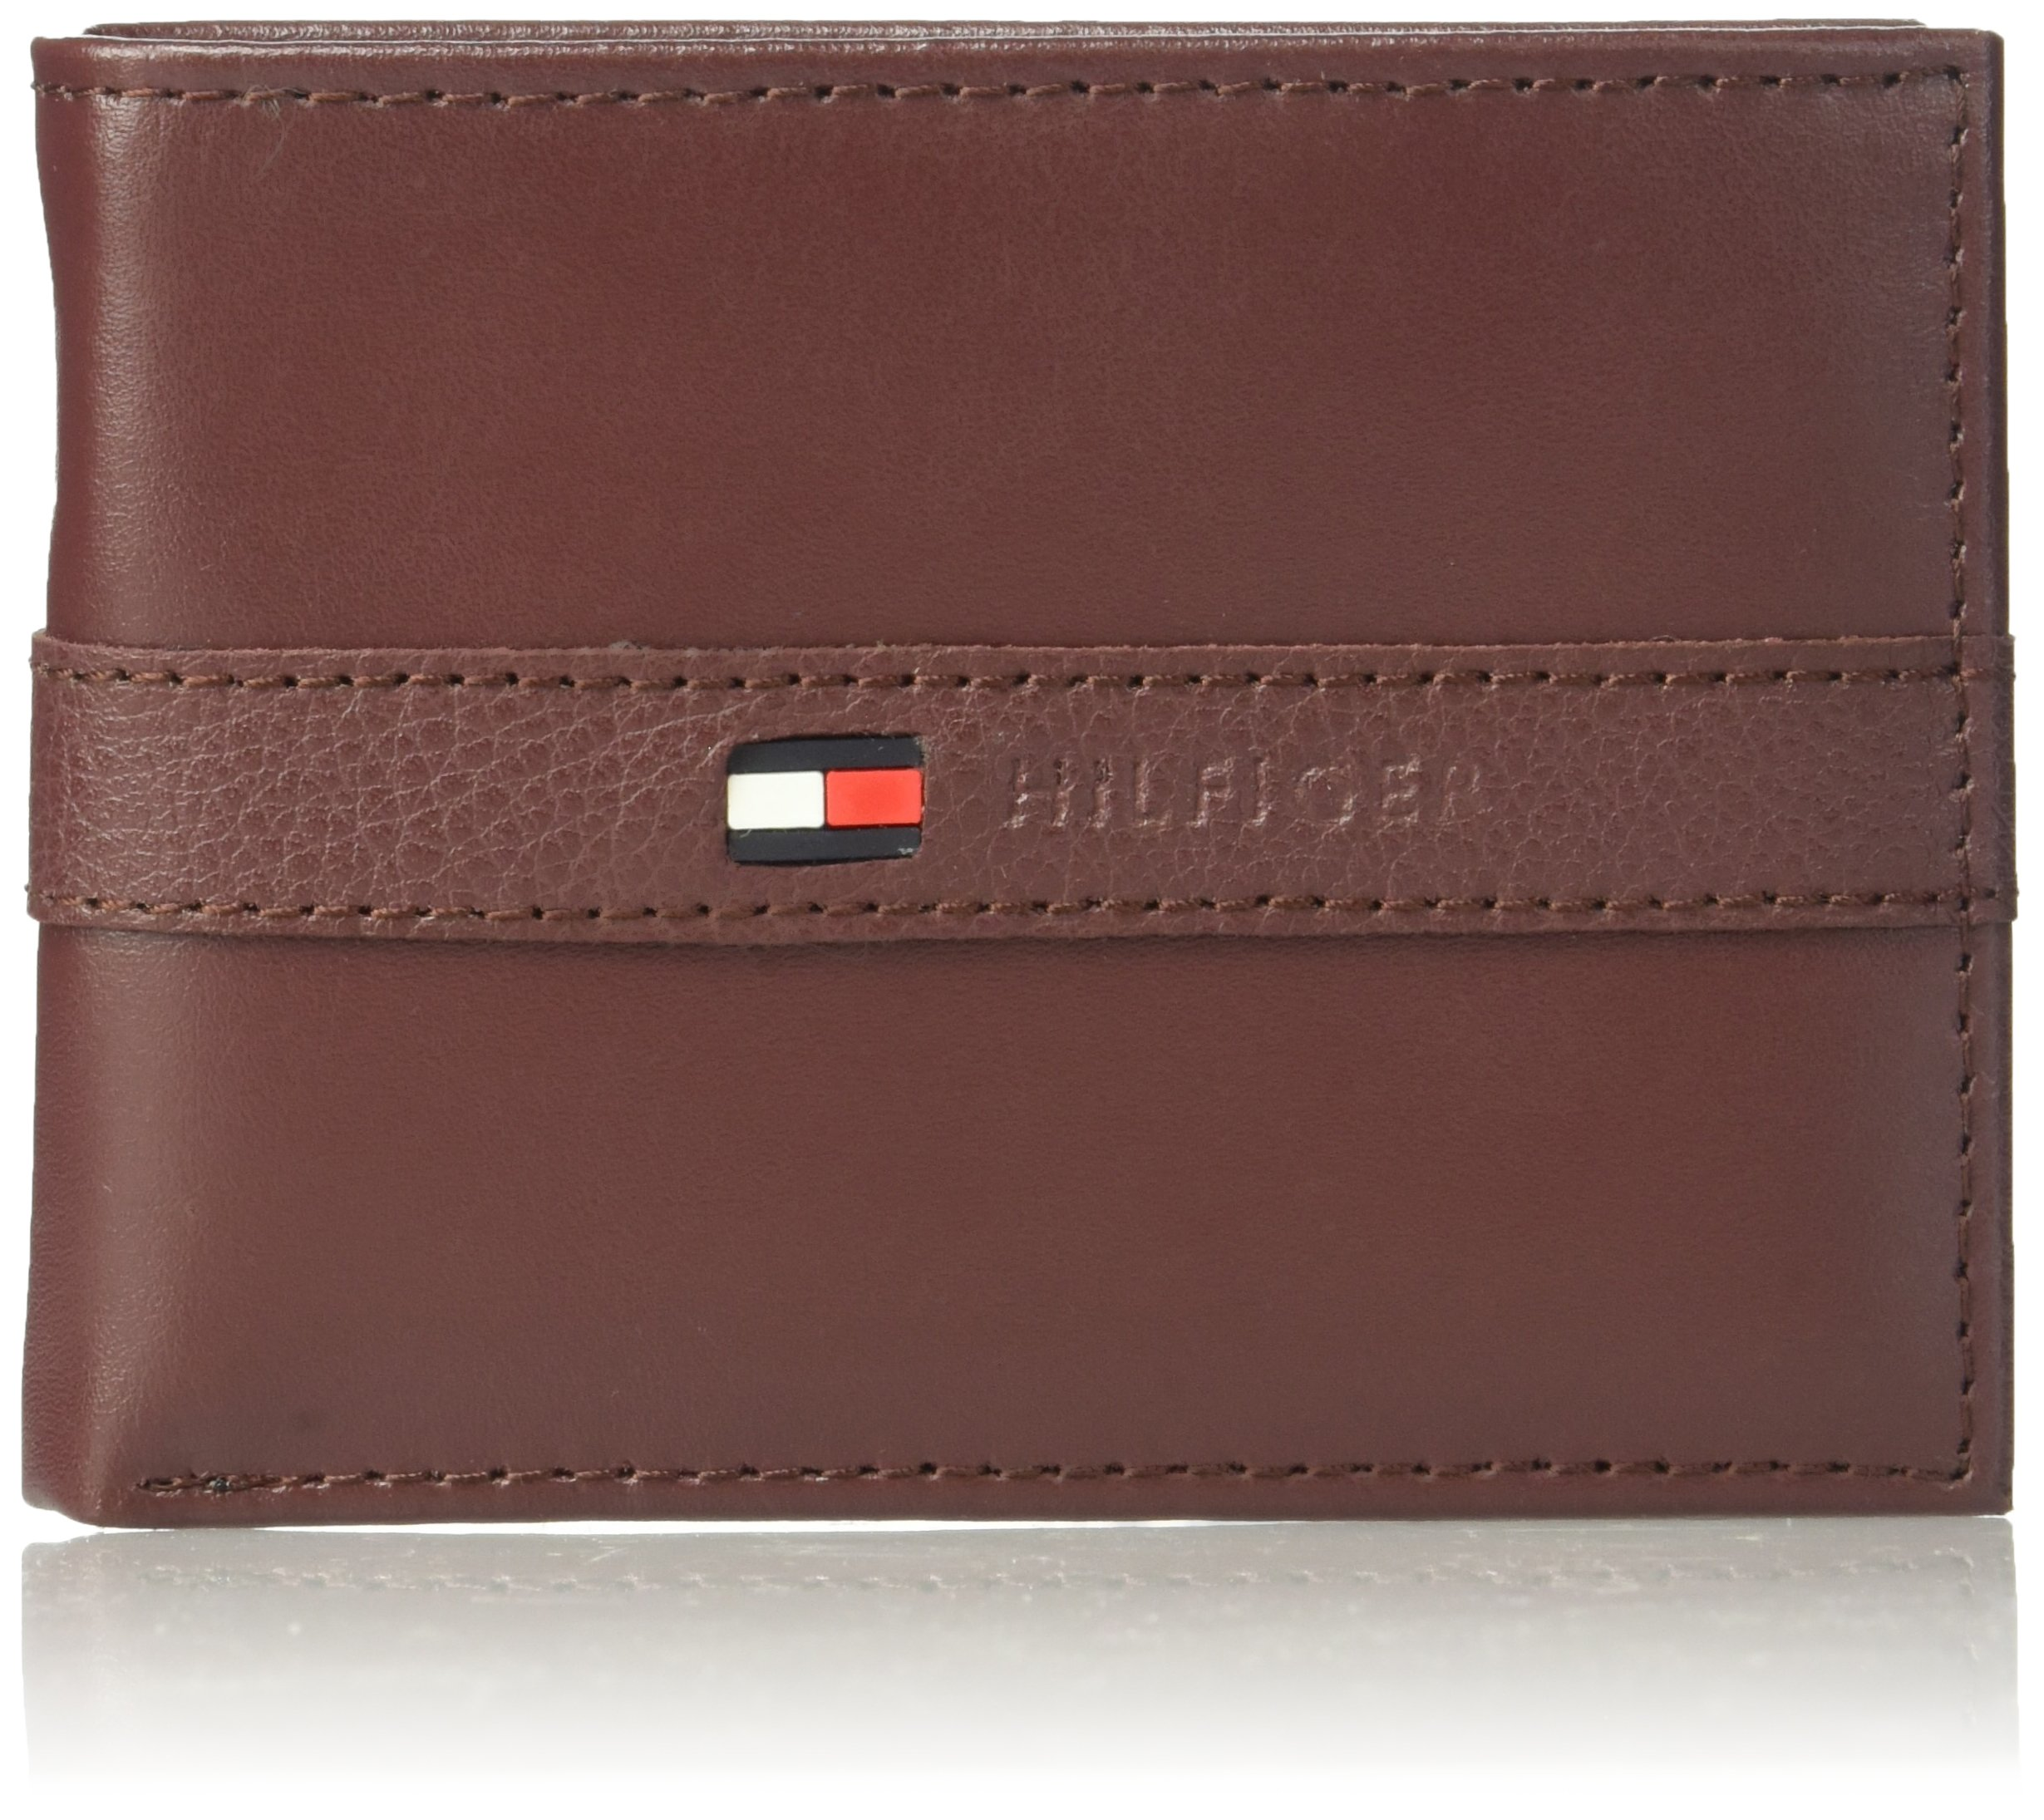 Tommy Hilfiger Men's Ranger Leather Passcase Wallet, Burgundy